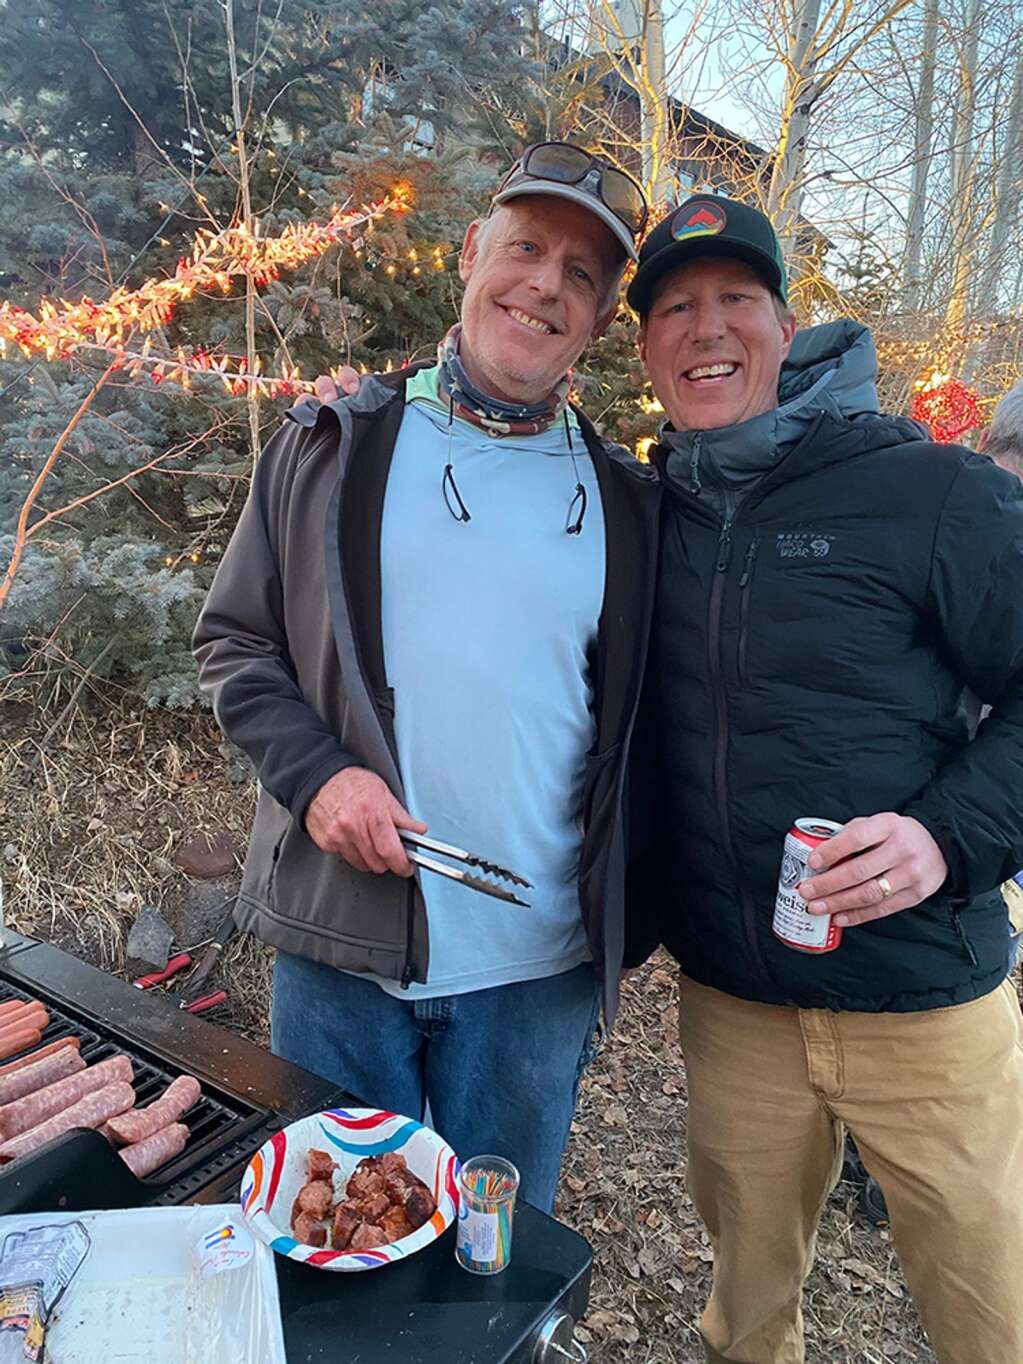 Jay Coarsey tends to the grill with support from Tim Power-Smith.